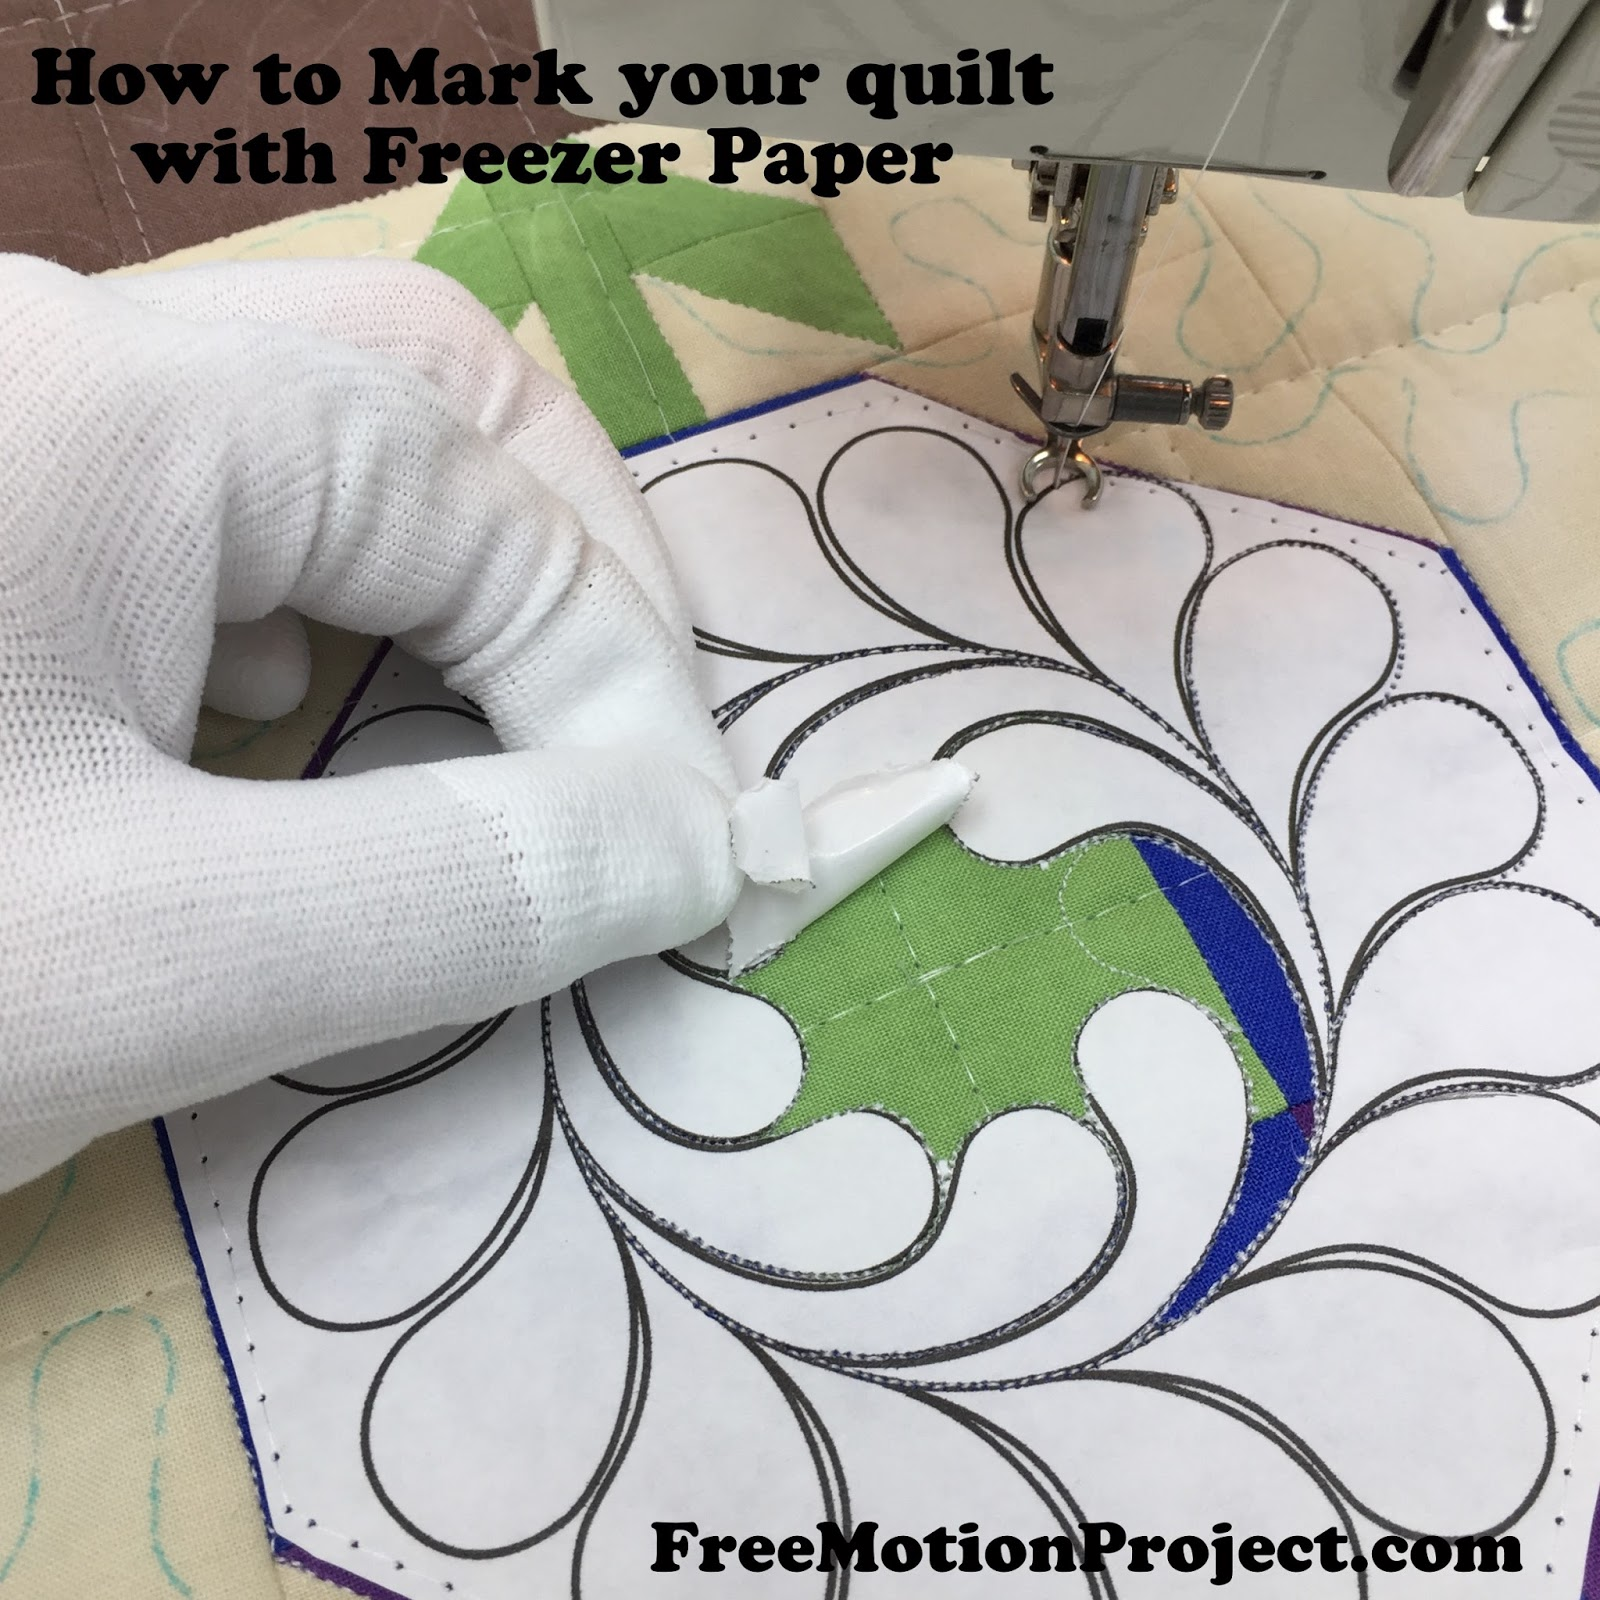 The Free Motion Quilting Project: Quilting Basics 4: How to Mark ... : freezer paper quilting - Adamdwight.com